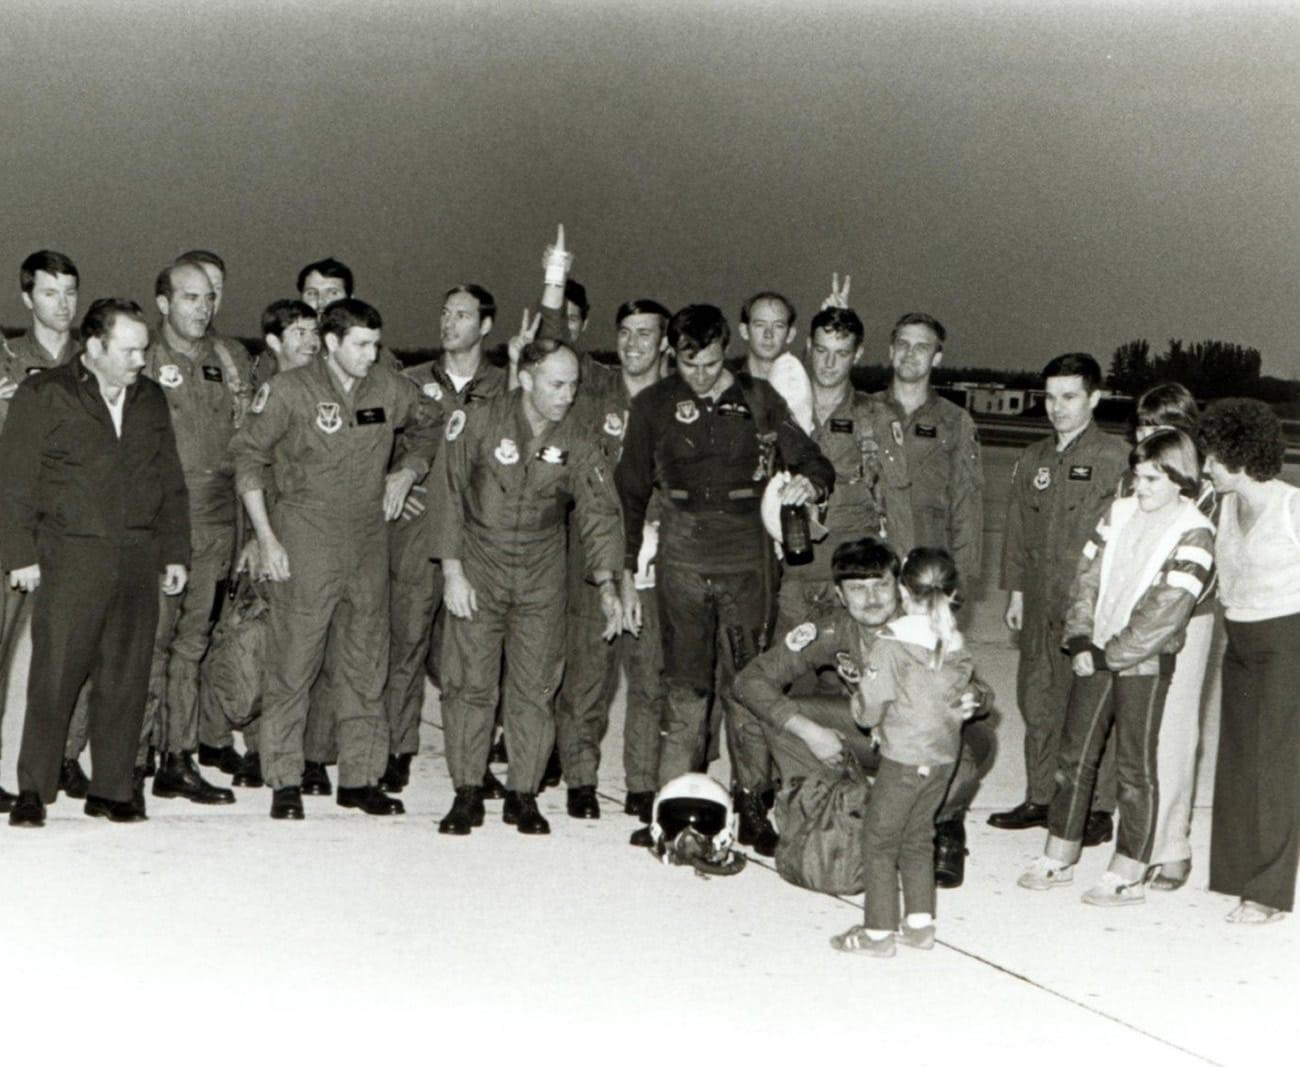 A doused Sqn Ldr Jim Barclay with 'champers' bottle and Joanie Barclay on right, daughters Nicola, Tracey and Steph (in lower front) and 308th TFTS aircrew after Jim's final F4 flight, Homestead AFB, Florida 26th January 1982